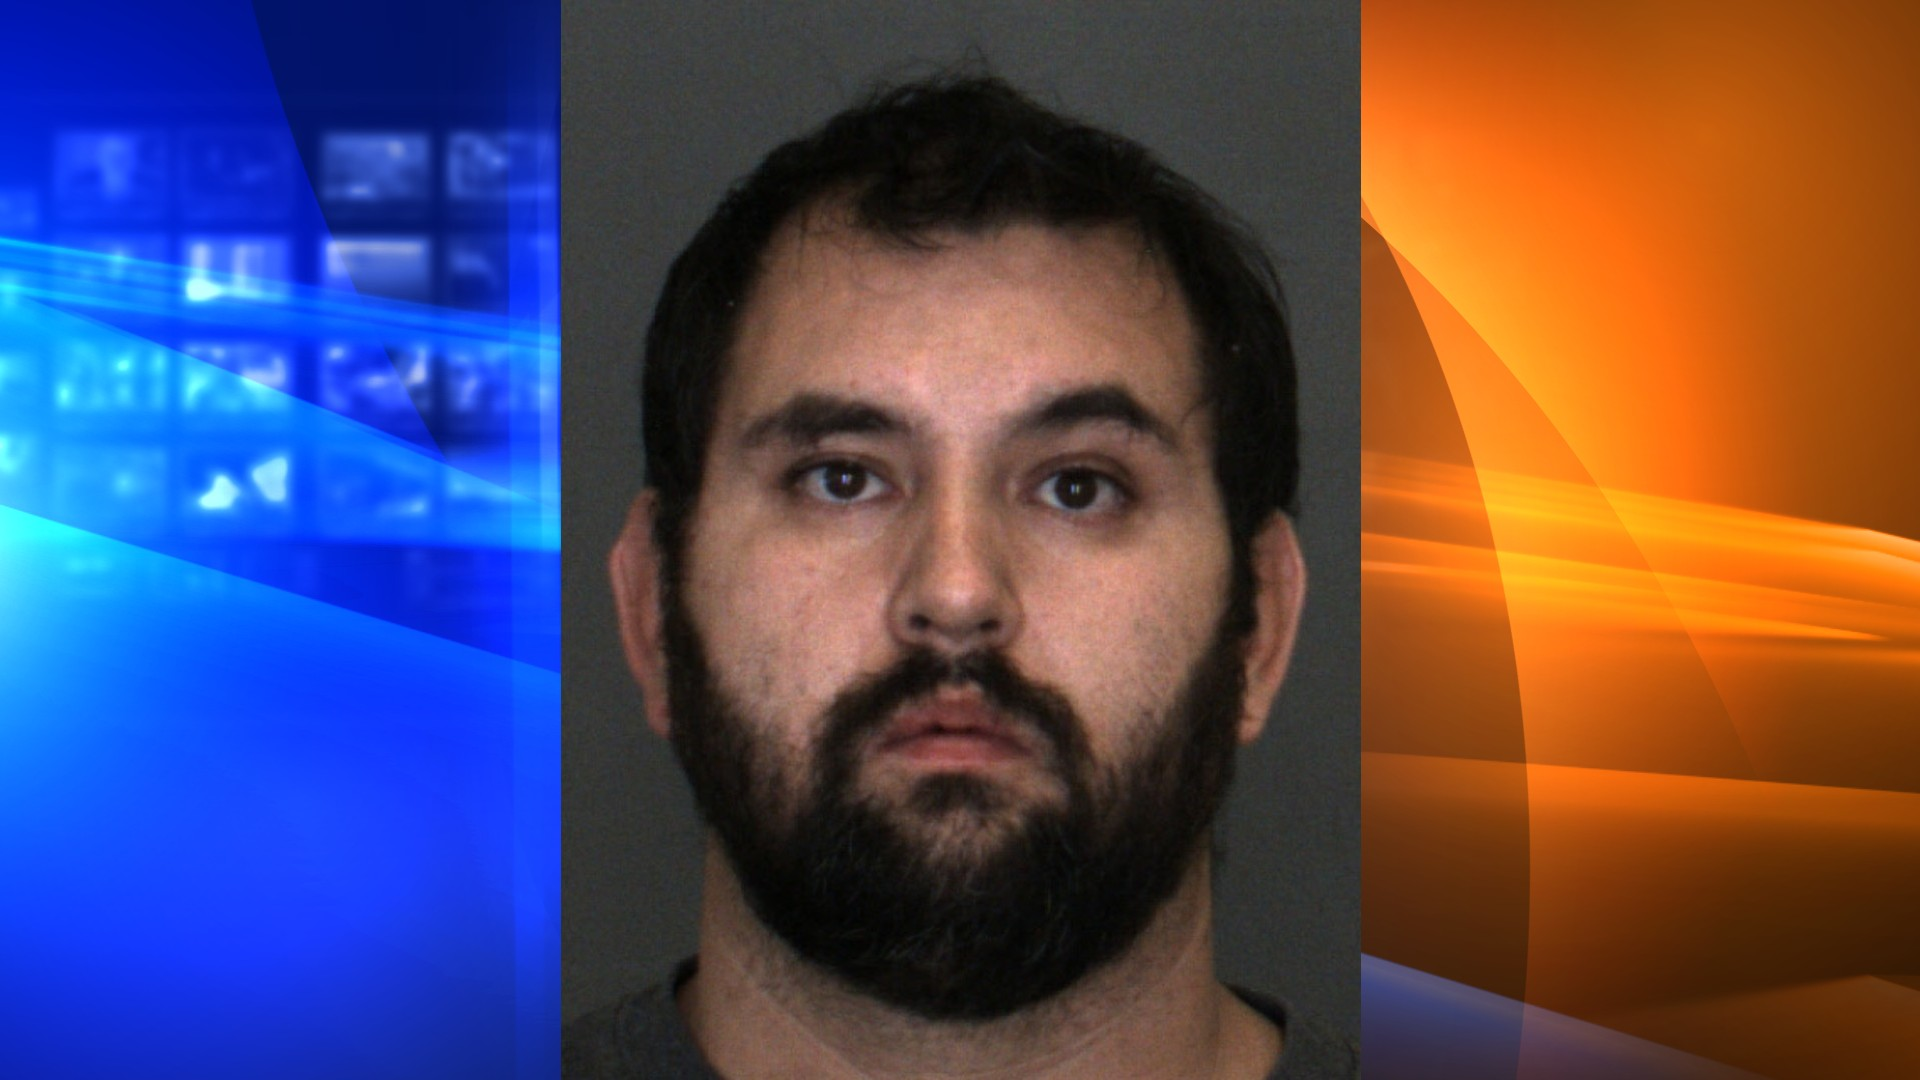 David Kanady is seen in a booking photo released by the San Bernardino County Sheriff's Department.